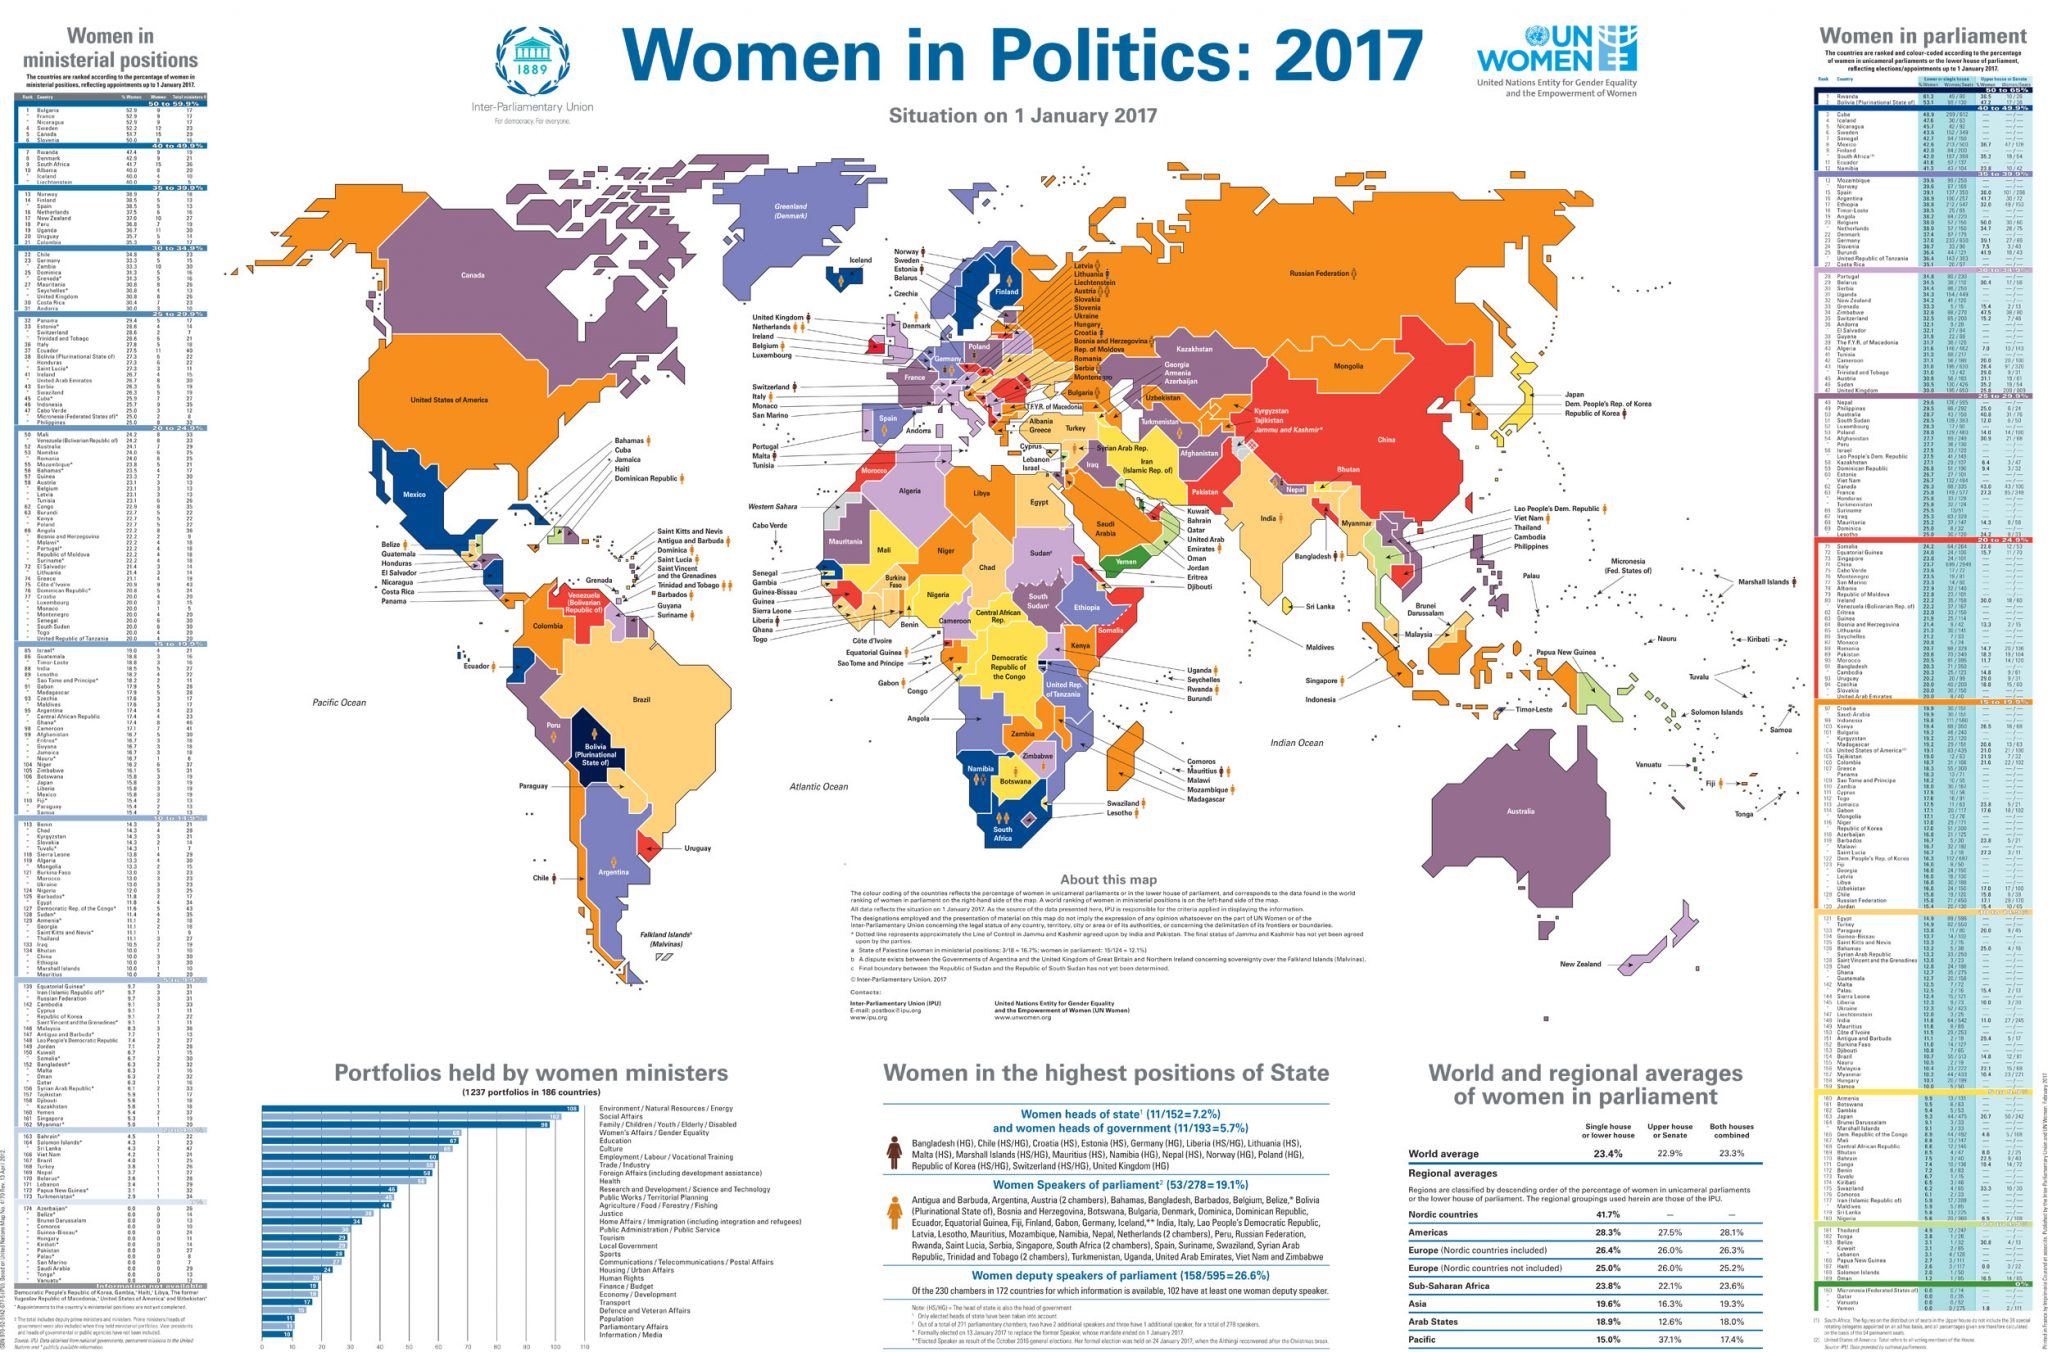 Women's political parity slow to grow as UN launches latest 'Women in Politics' map